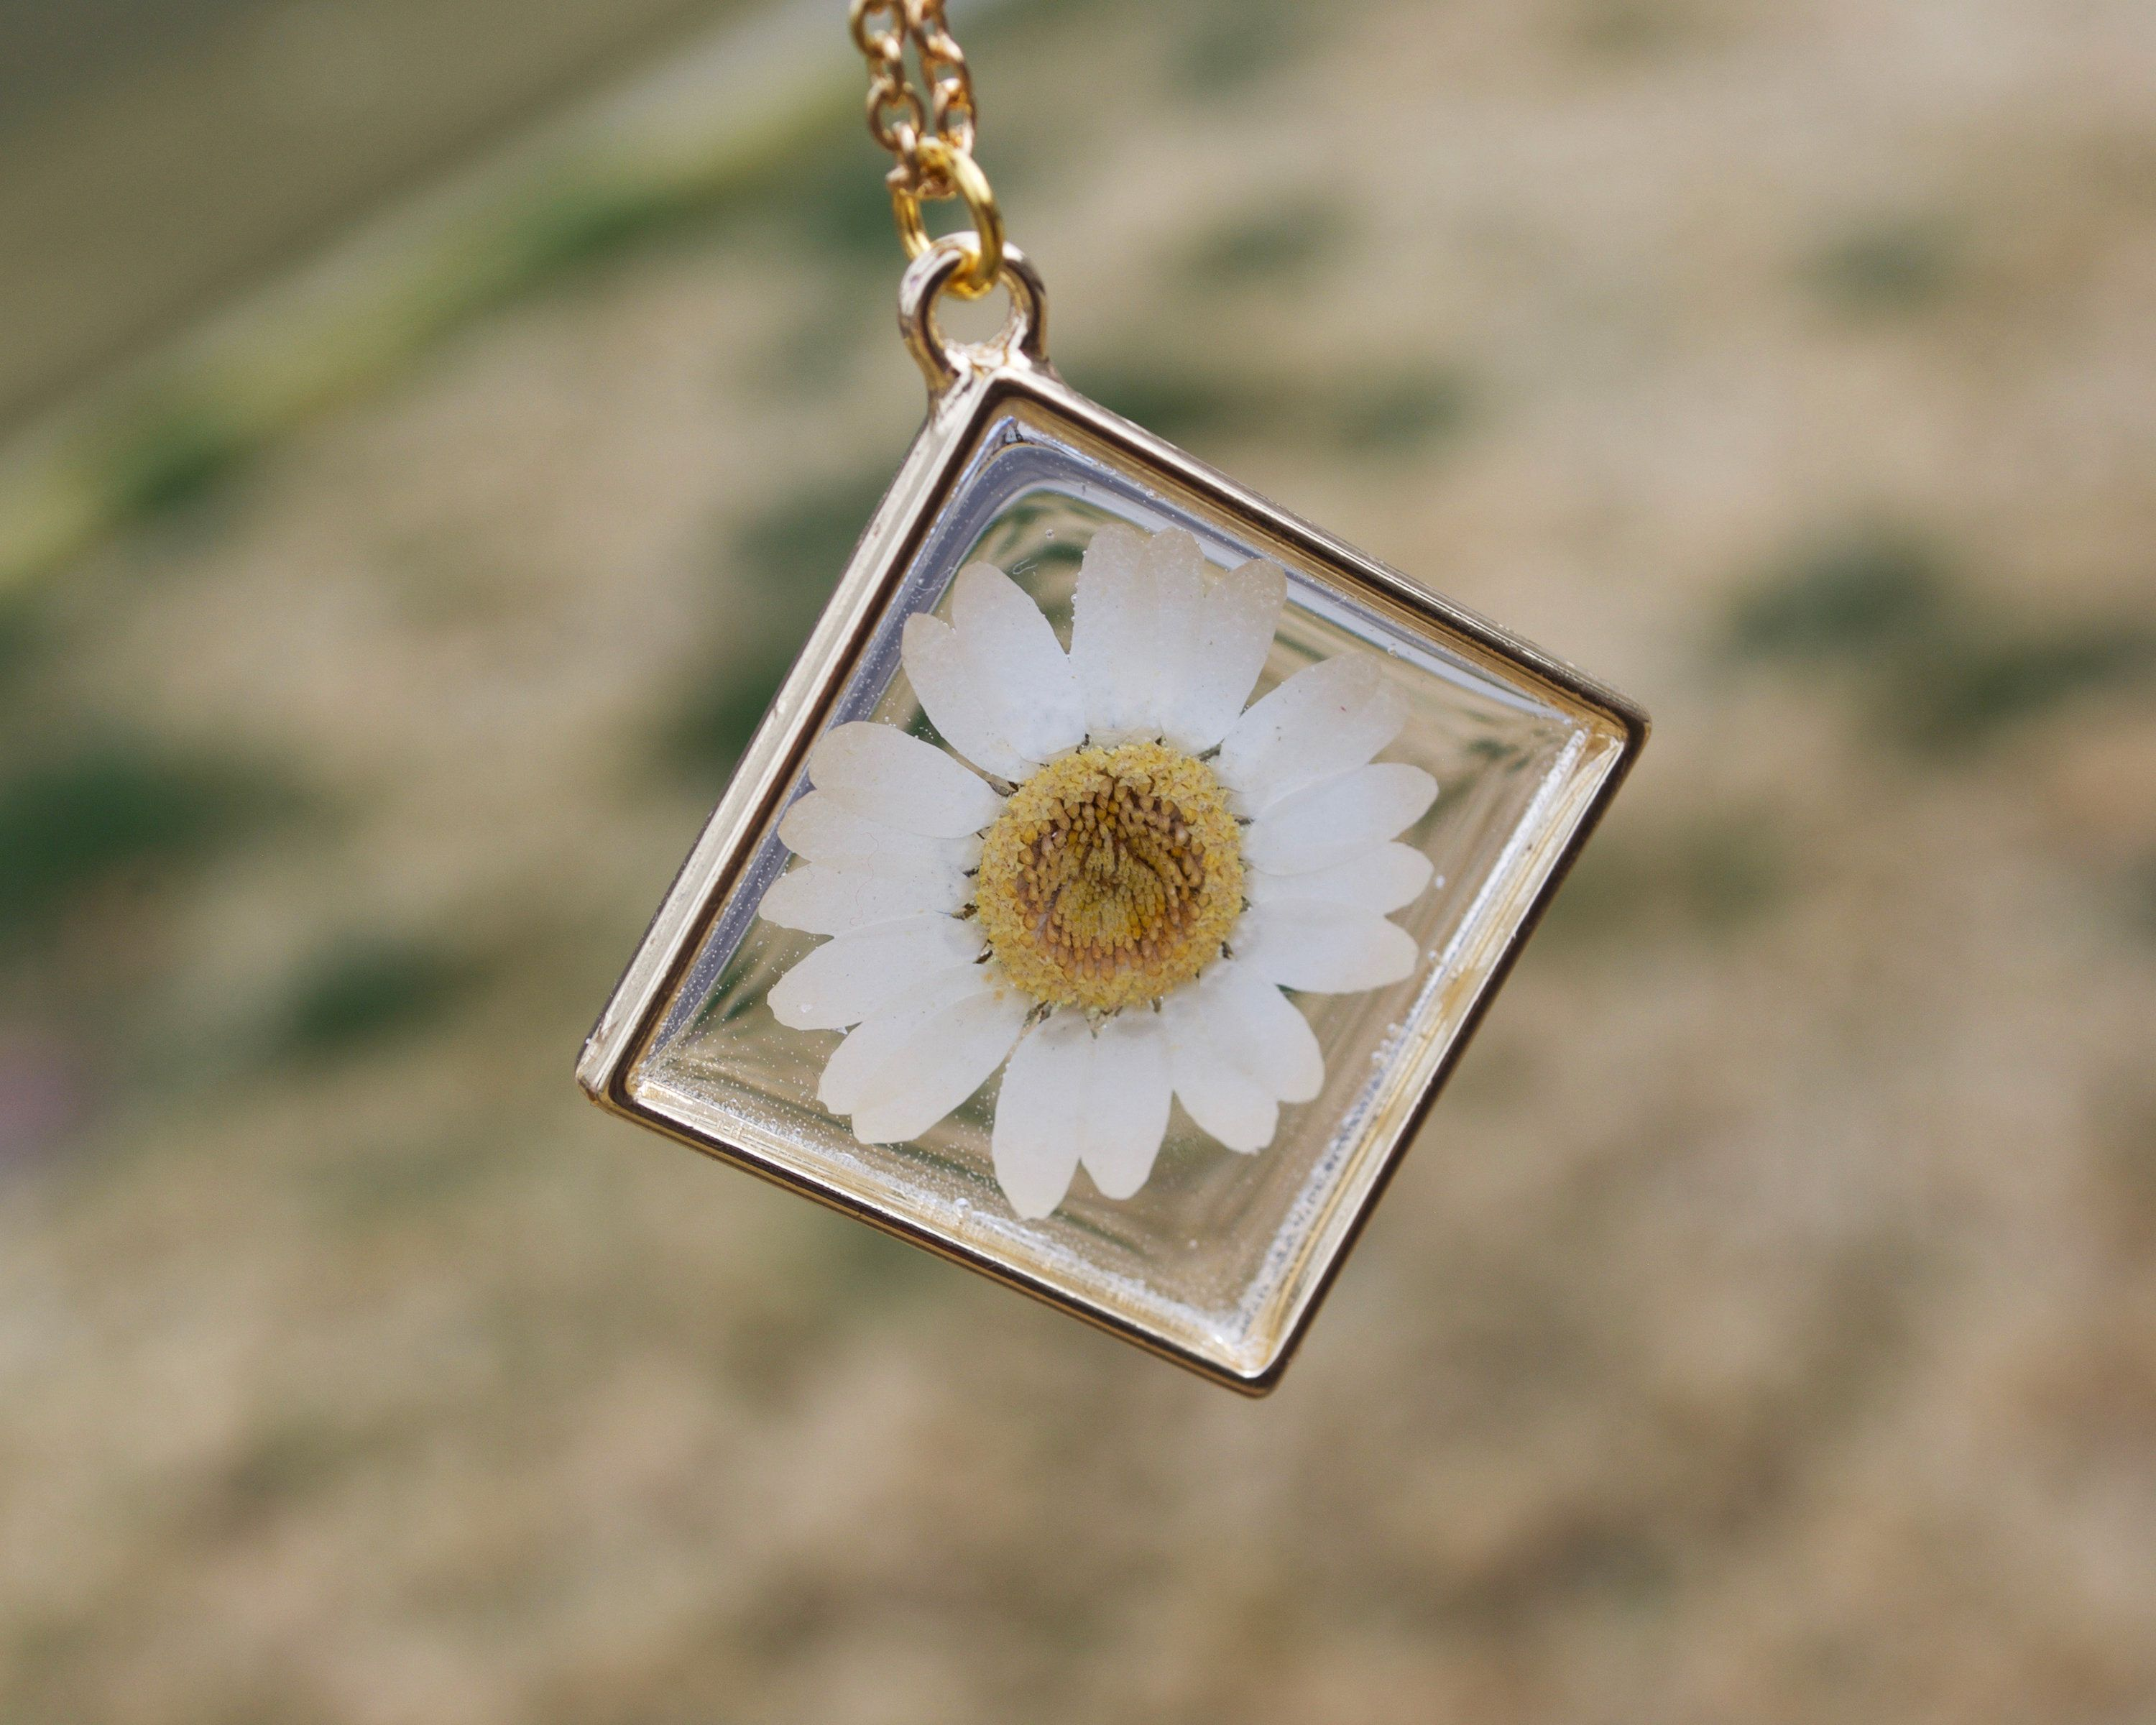 bundle set lance and message packaging gold it a london blog with comes you day daisy special the an say valentines complete i love meaningful necklace limited insert extra making this gift edition